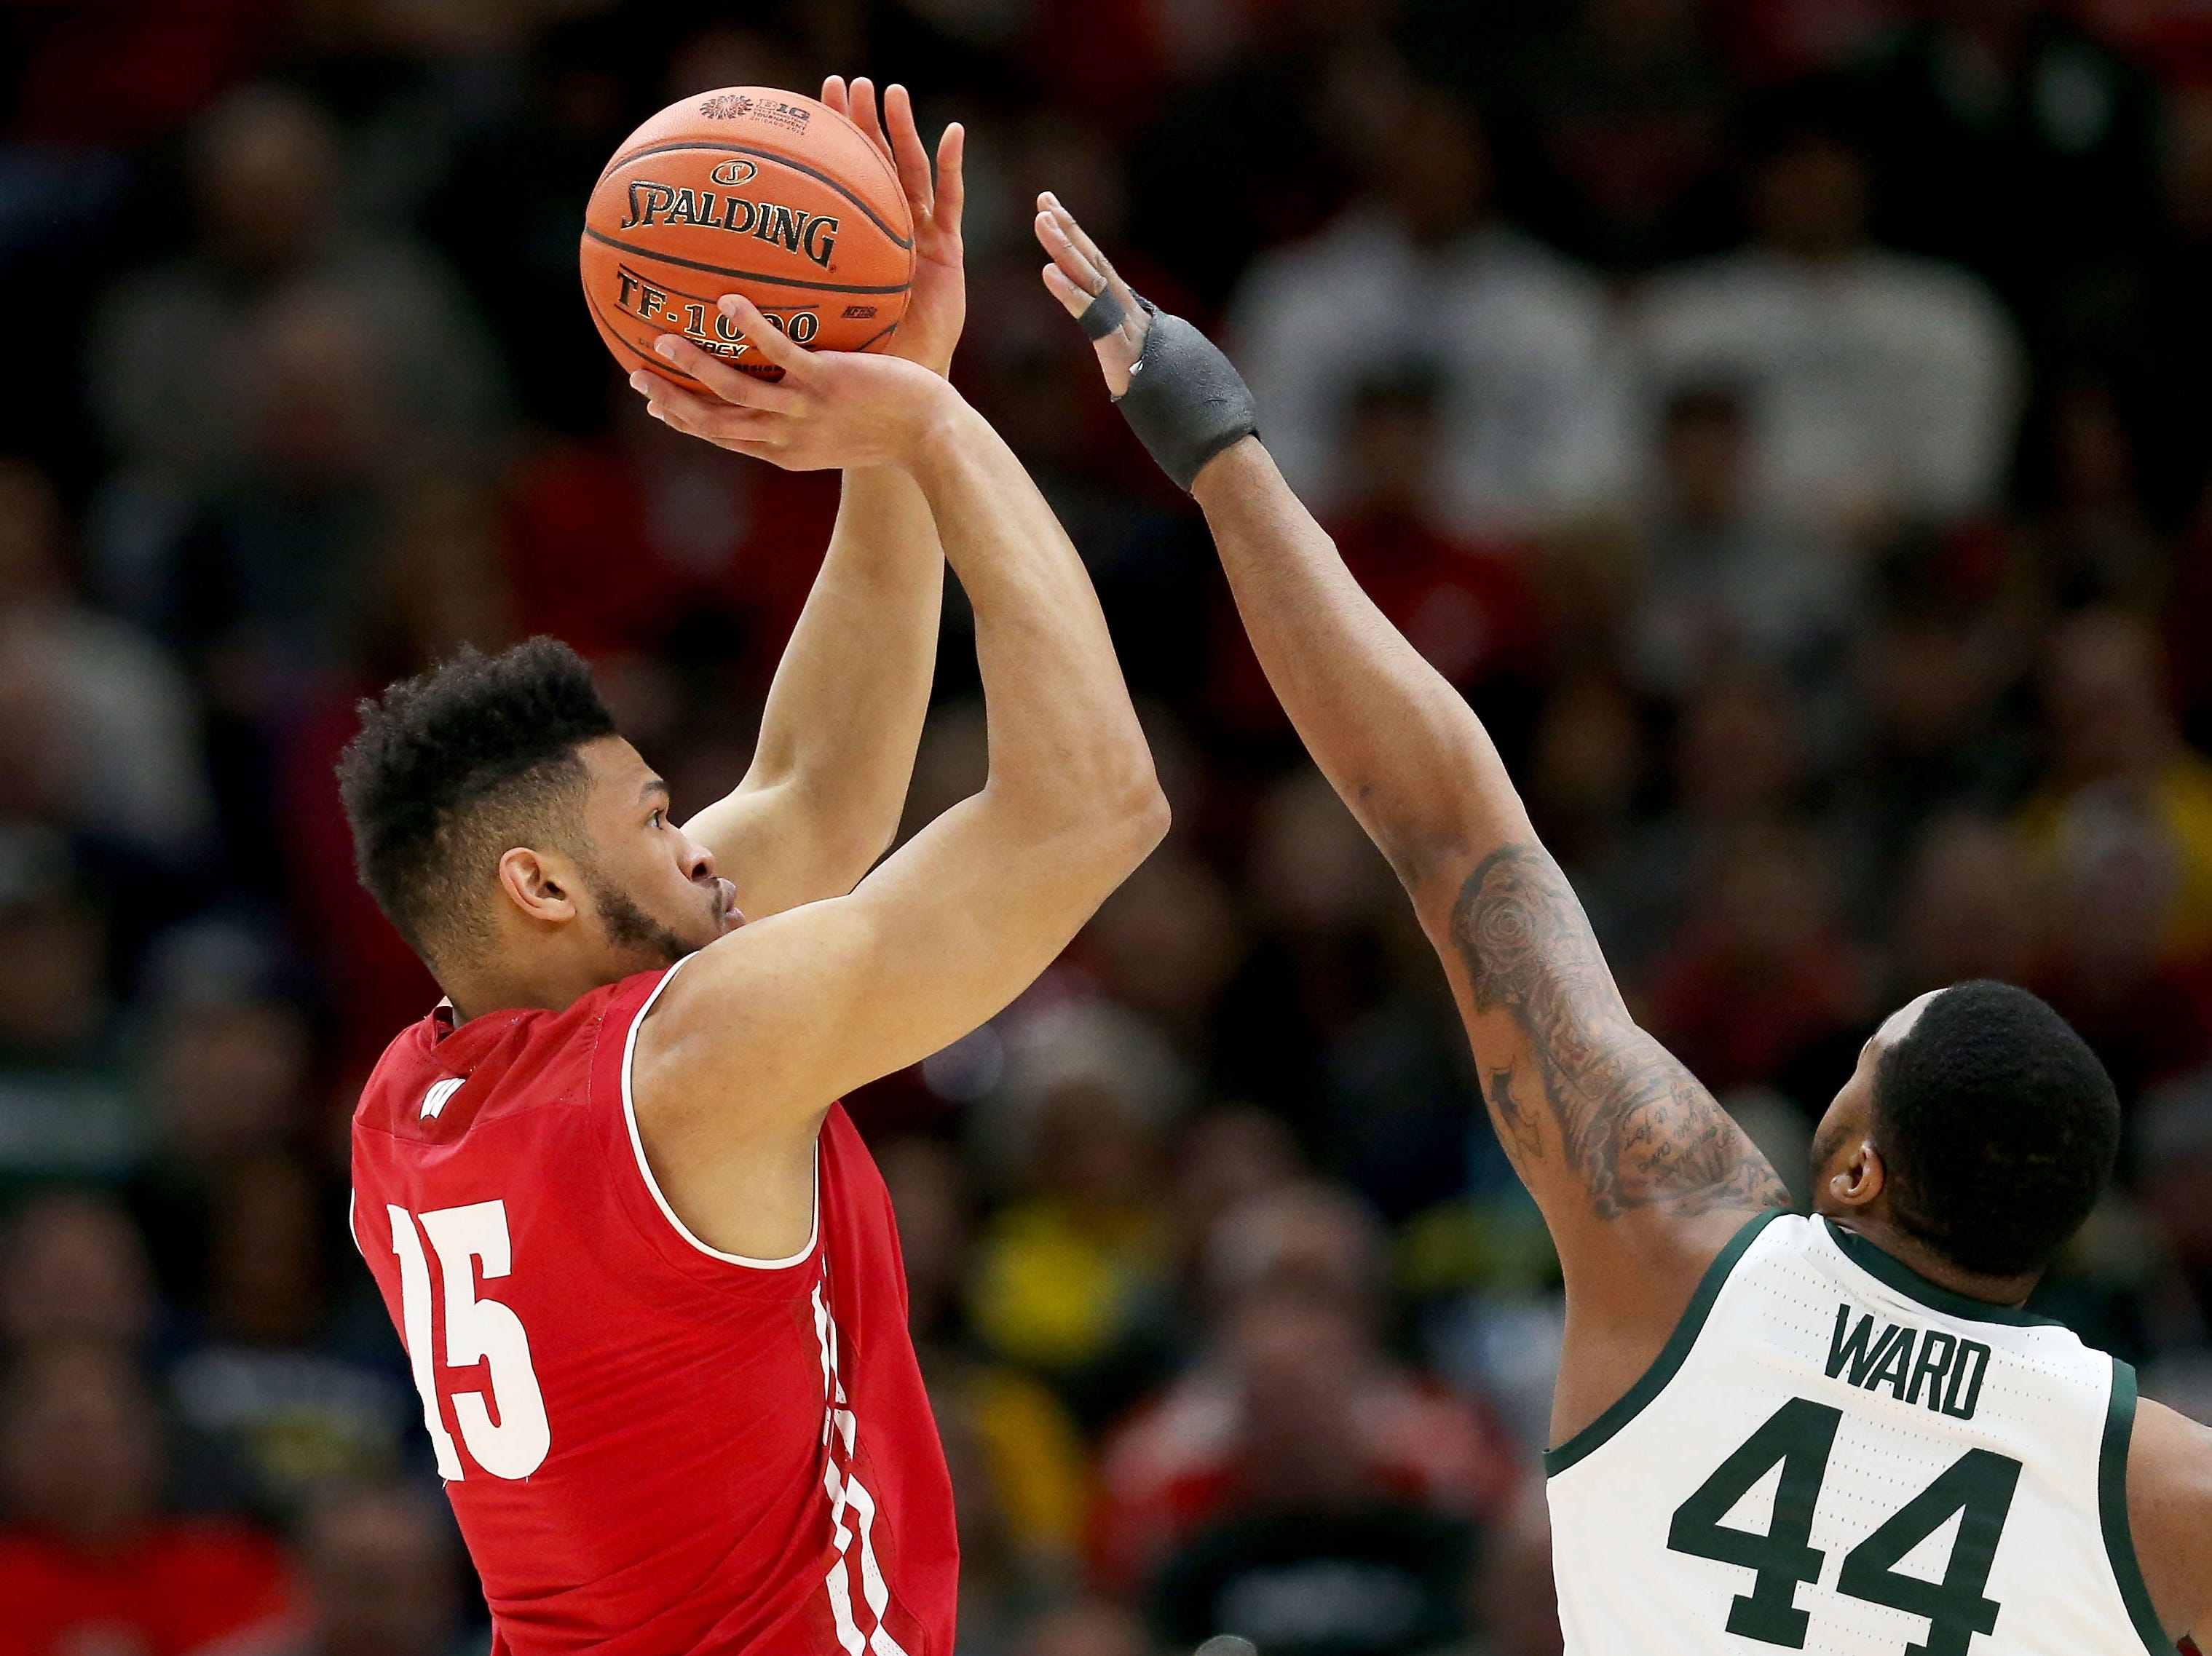 Charles Thomas IV #15 of the Wisconsin Badgers attempts a shot while being guarded by Nick Ward #44 of the Michigan State Spartans in the first half during the semifinals of the Big Ten Basketball Tournament at the United Center on March 16, 2019 in Chicago, Illinois.